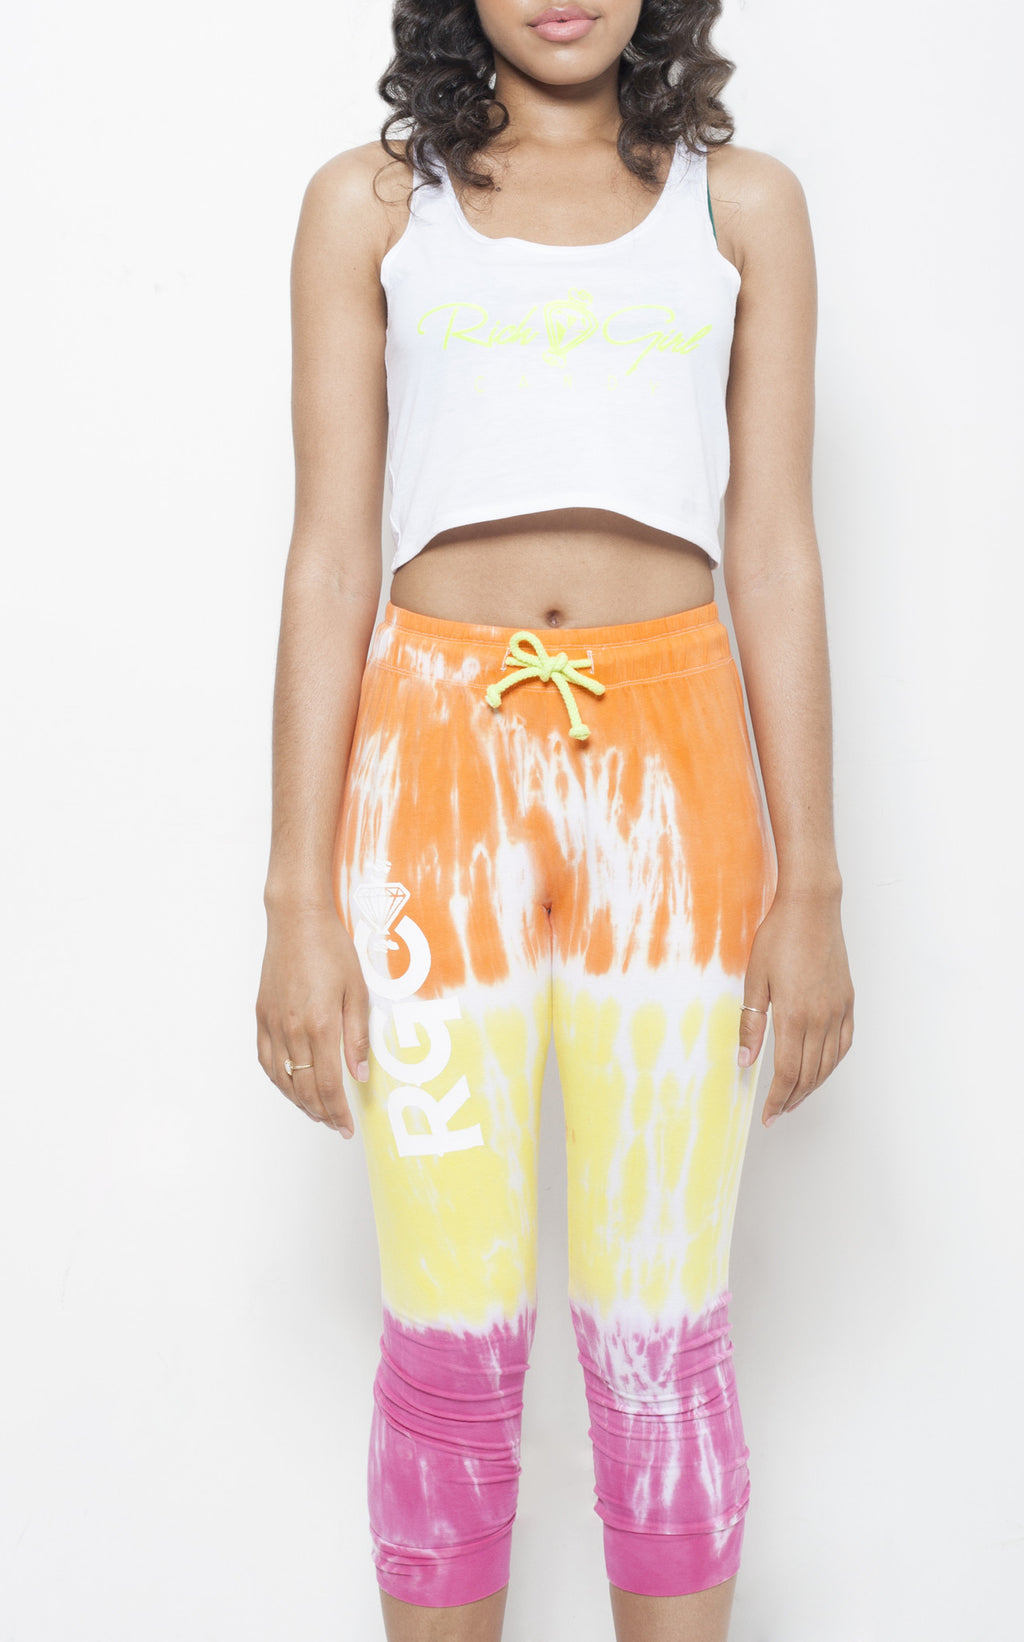 Orange Tye Dye Pants with White Name